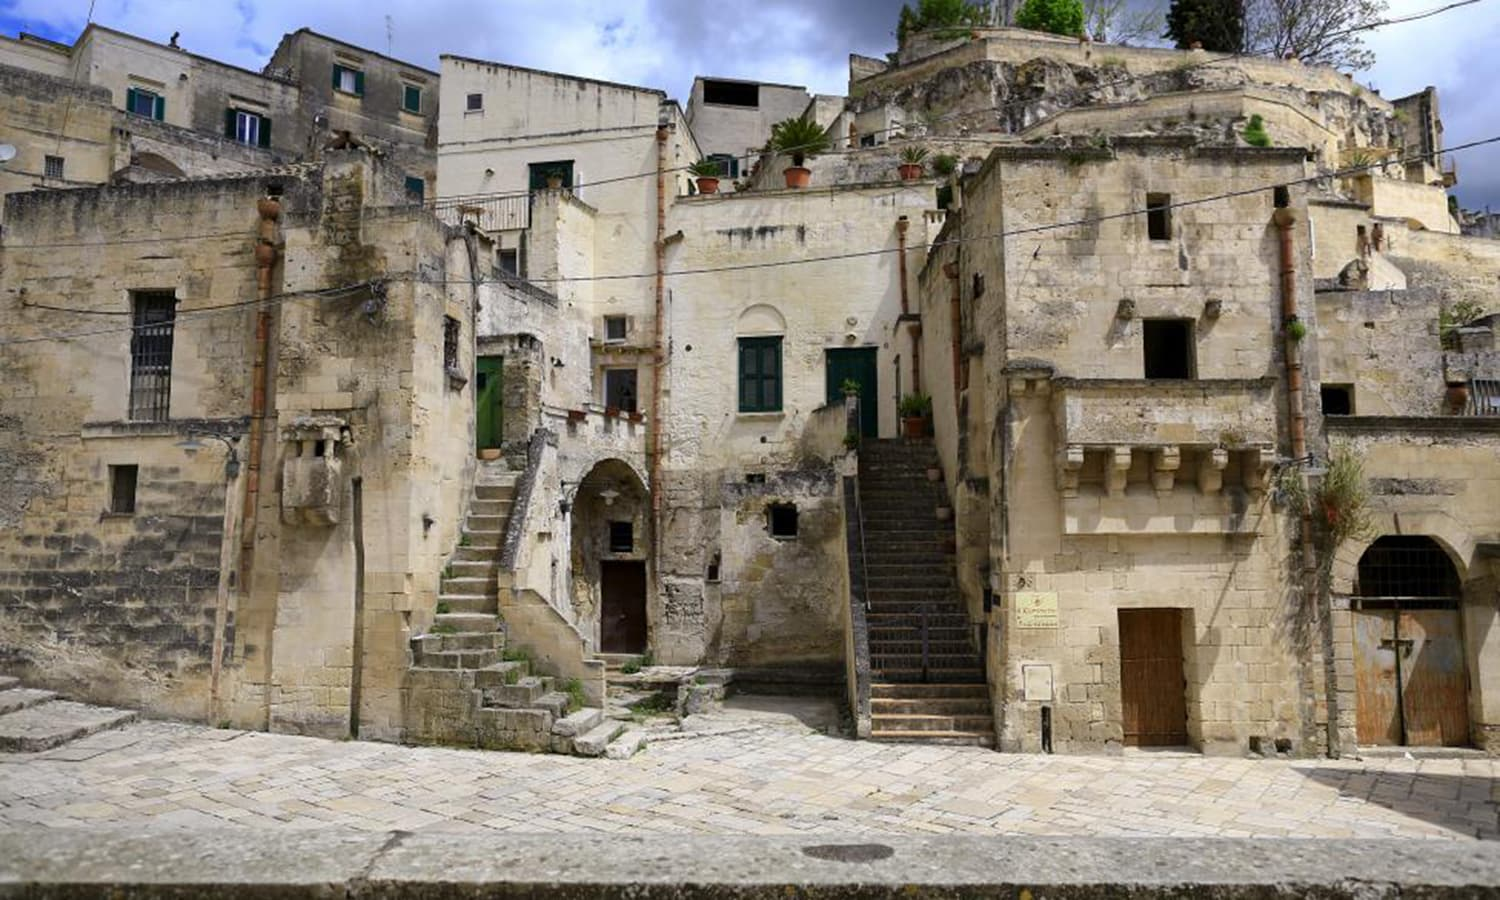 A general view of Matera's Sassi limestone cave dwellings in southern Italy.